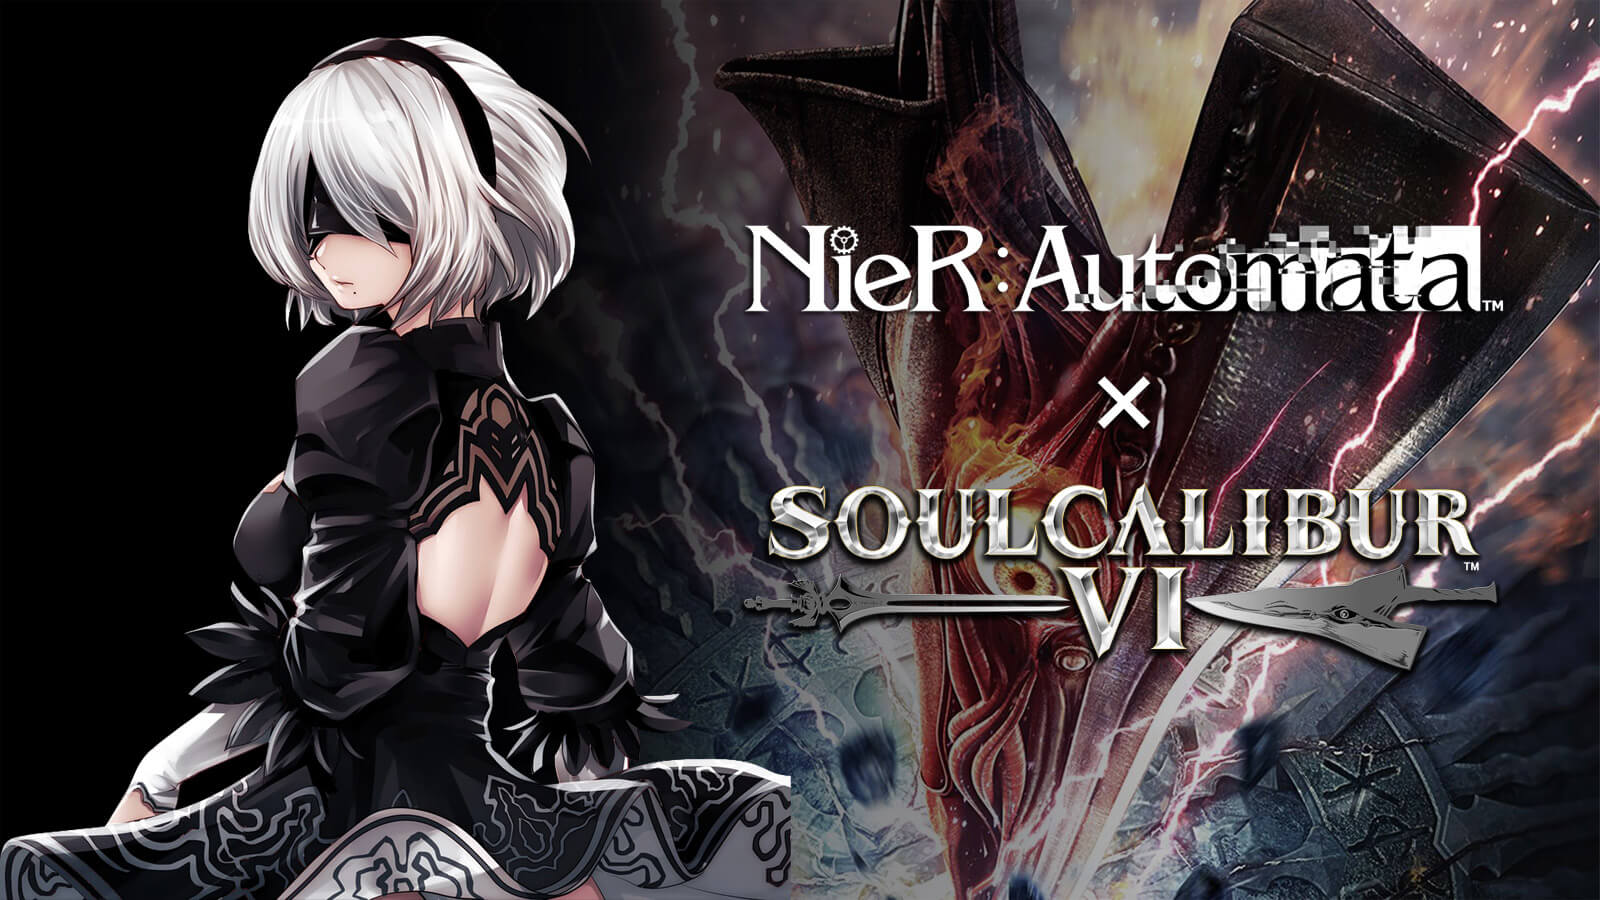 Soulcalibur 6 Adds 2B from NieR: Automata - Gameslaught